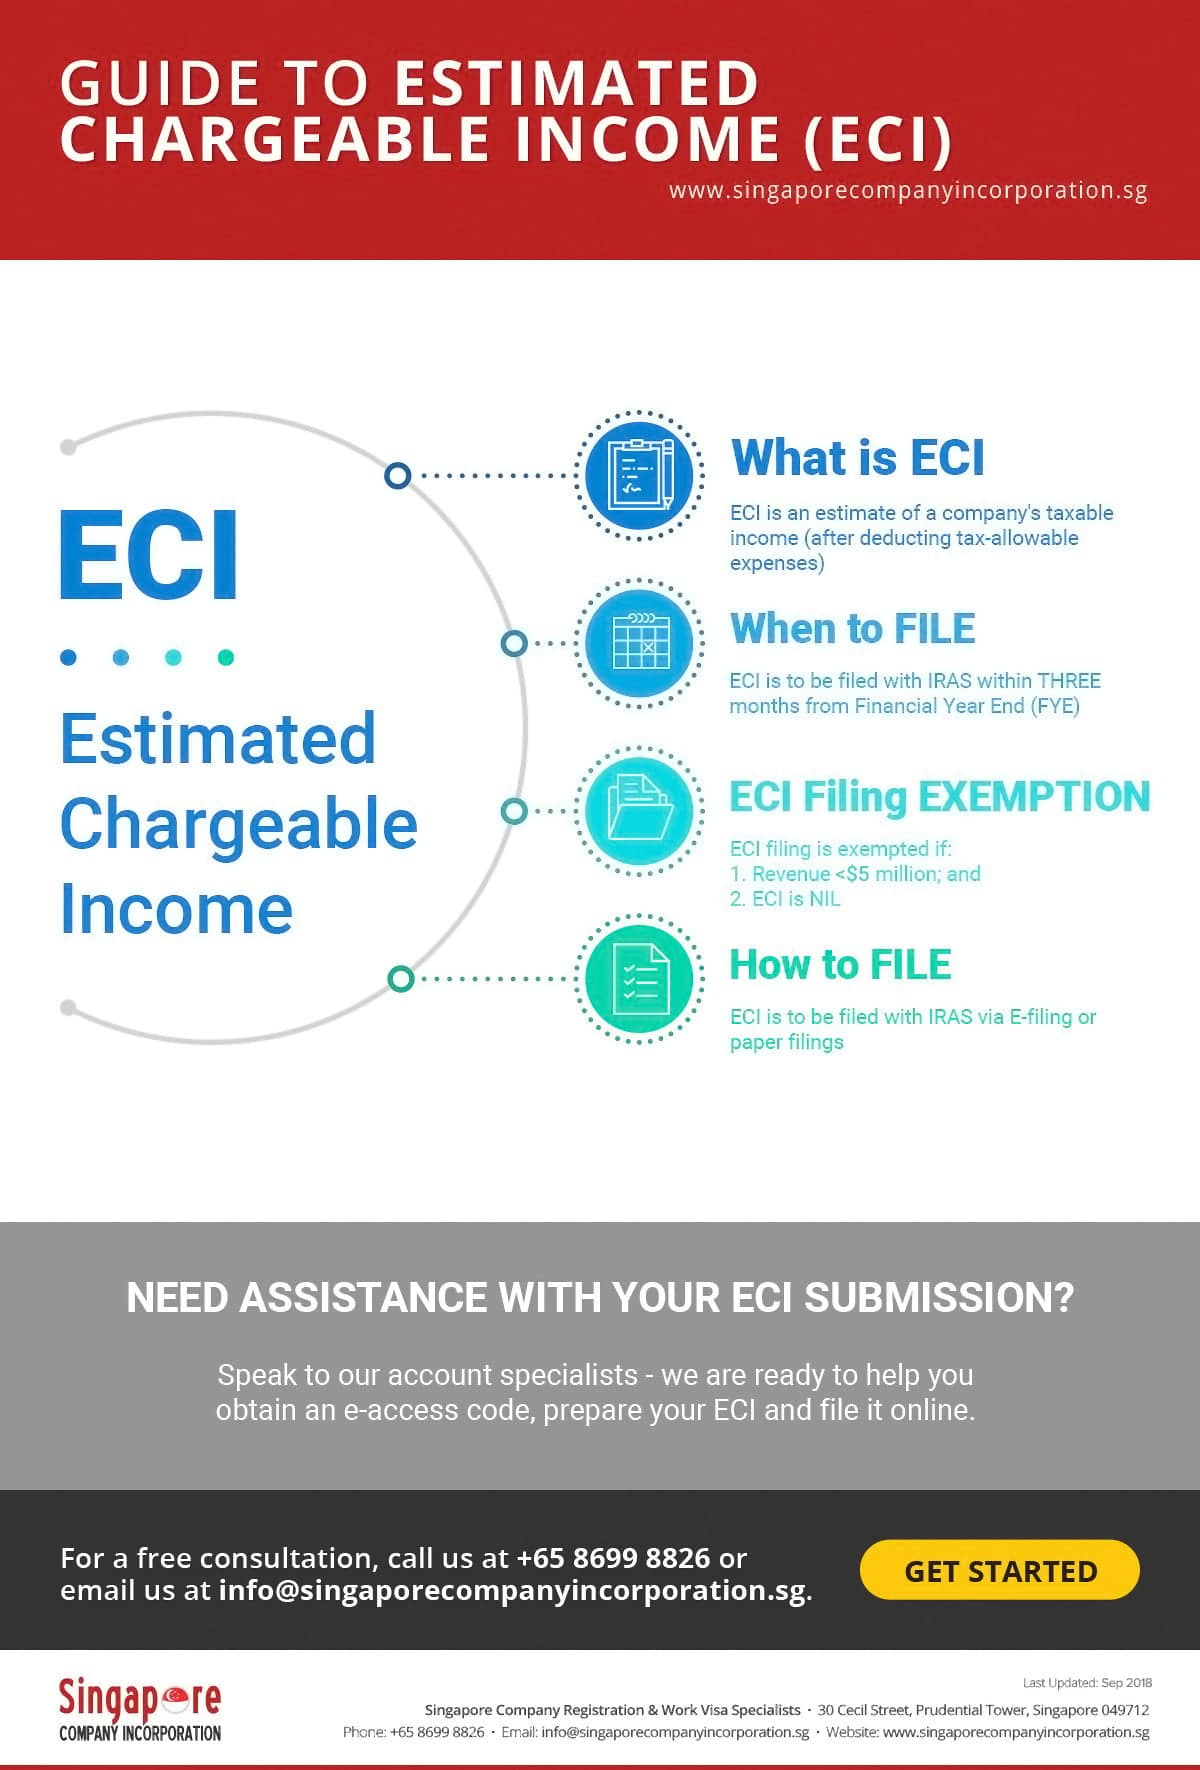 guide for estimated chargeable income